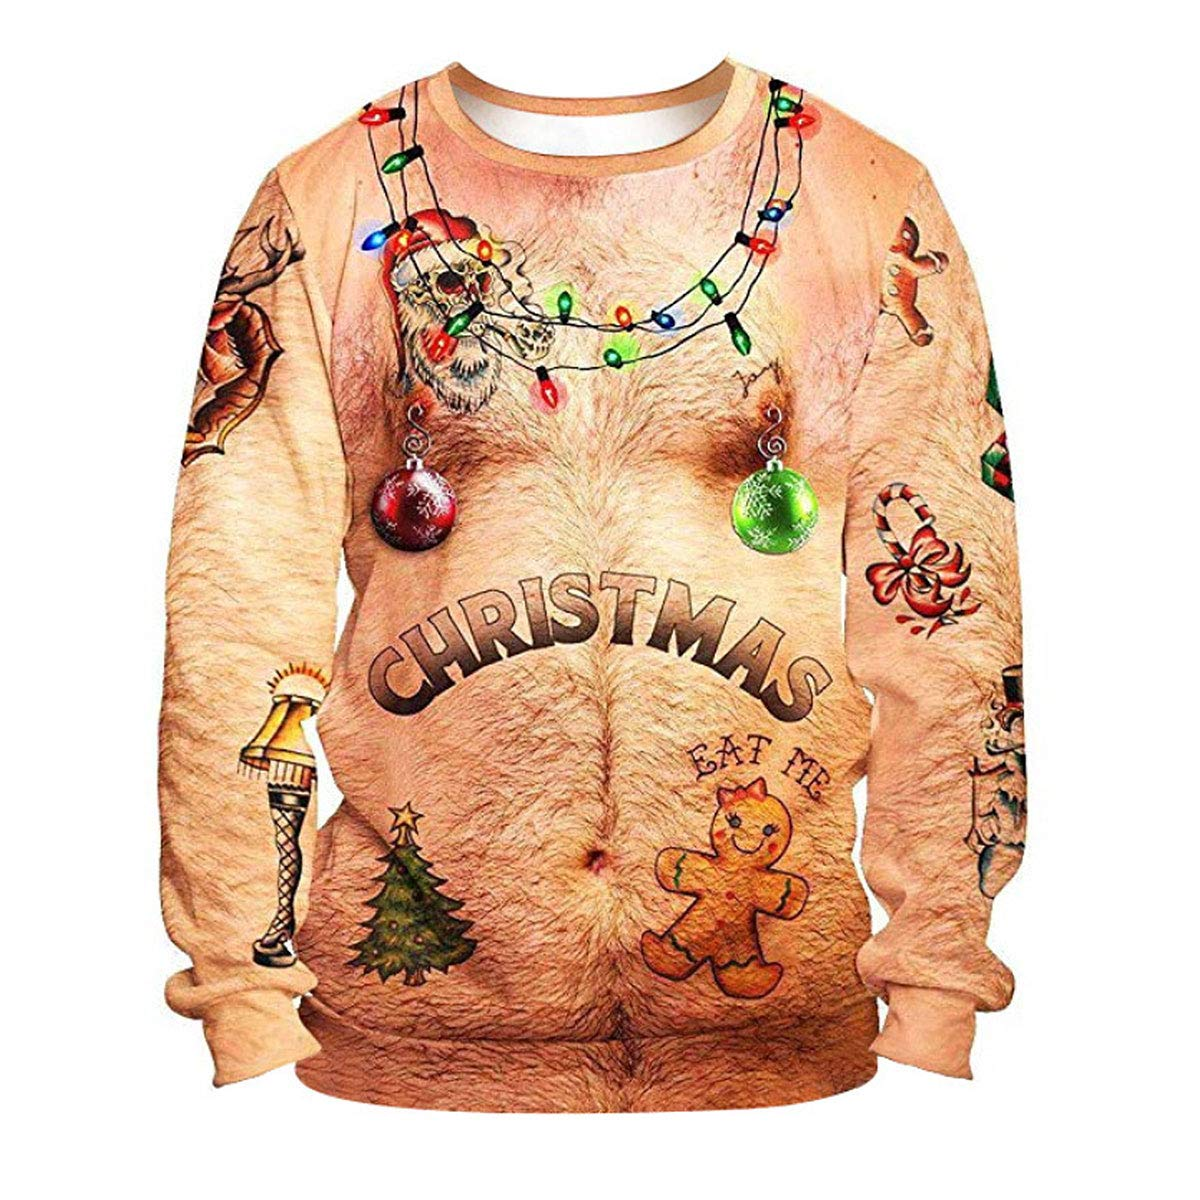 Ugly Christmas Sweatshirt Funny 3D Design Printed Unisex Adult Long Sleeve Xmas Pullover Sweater Shirt